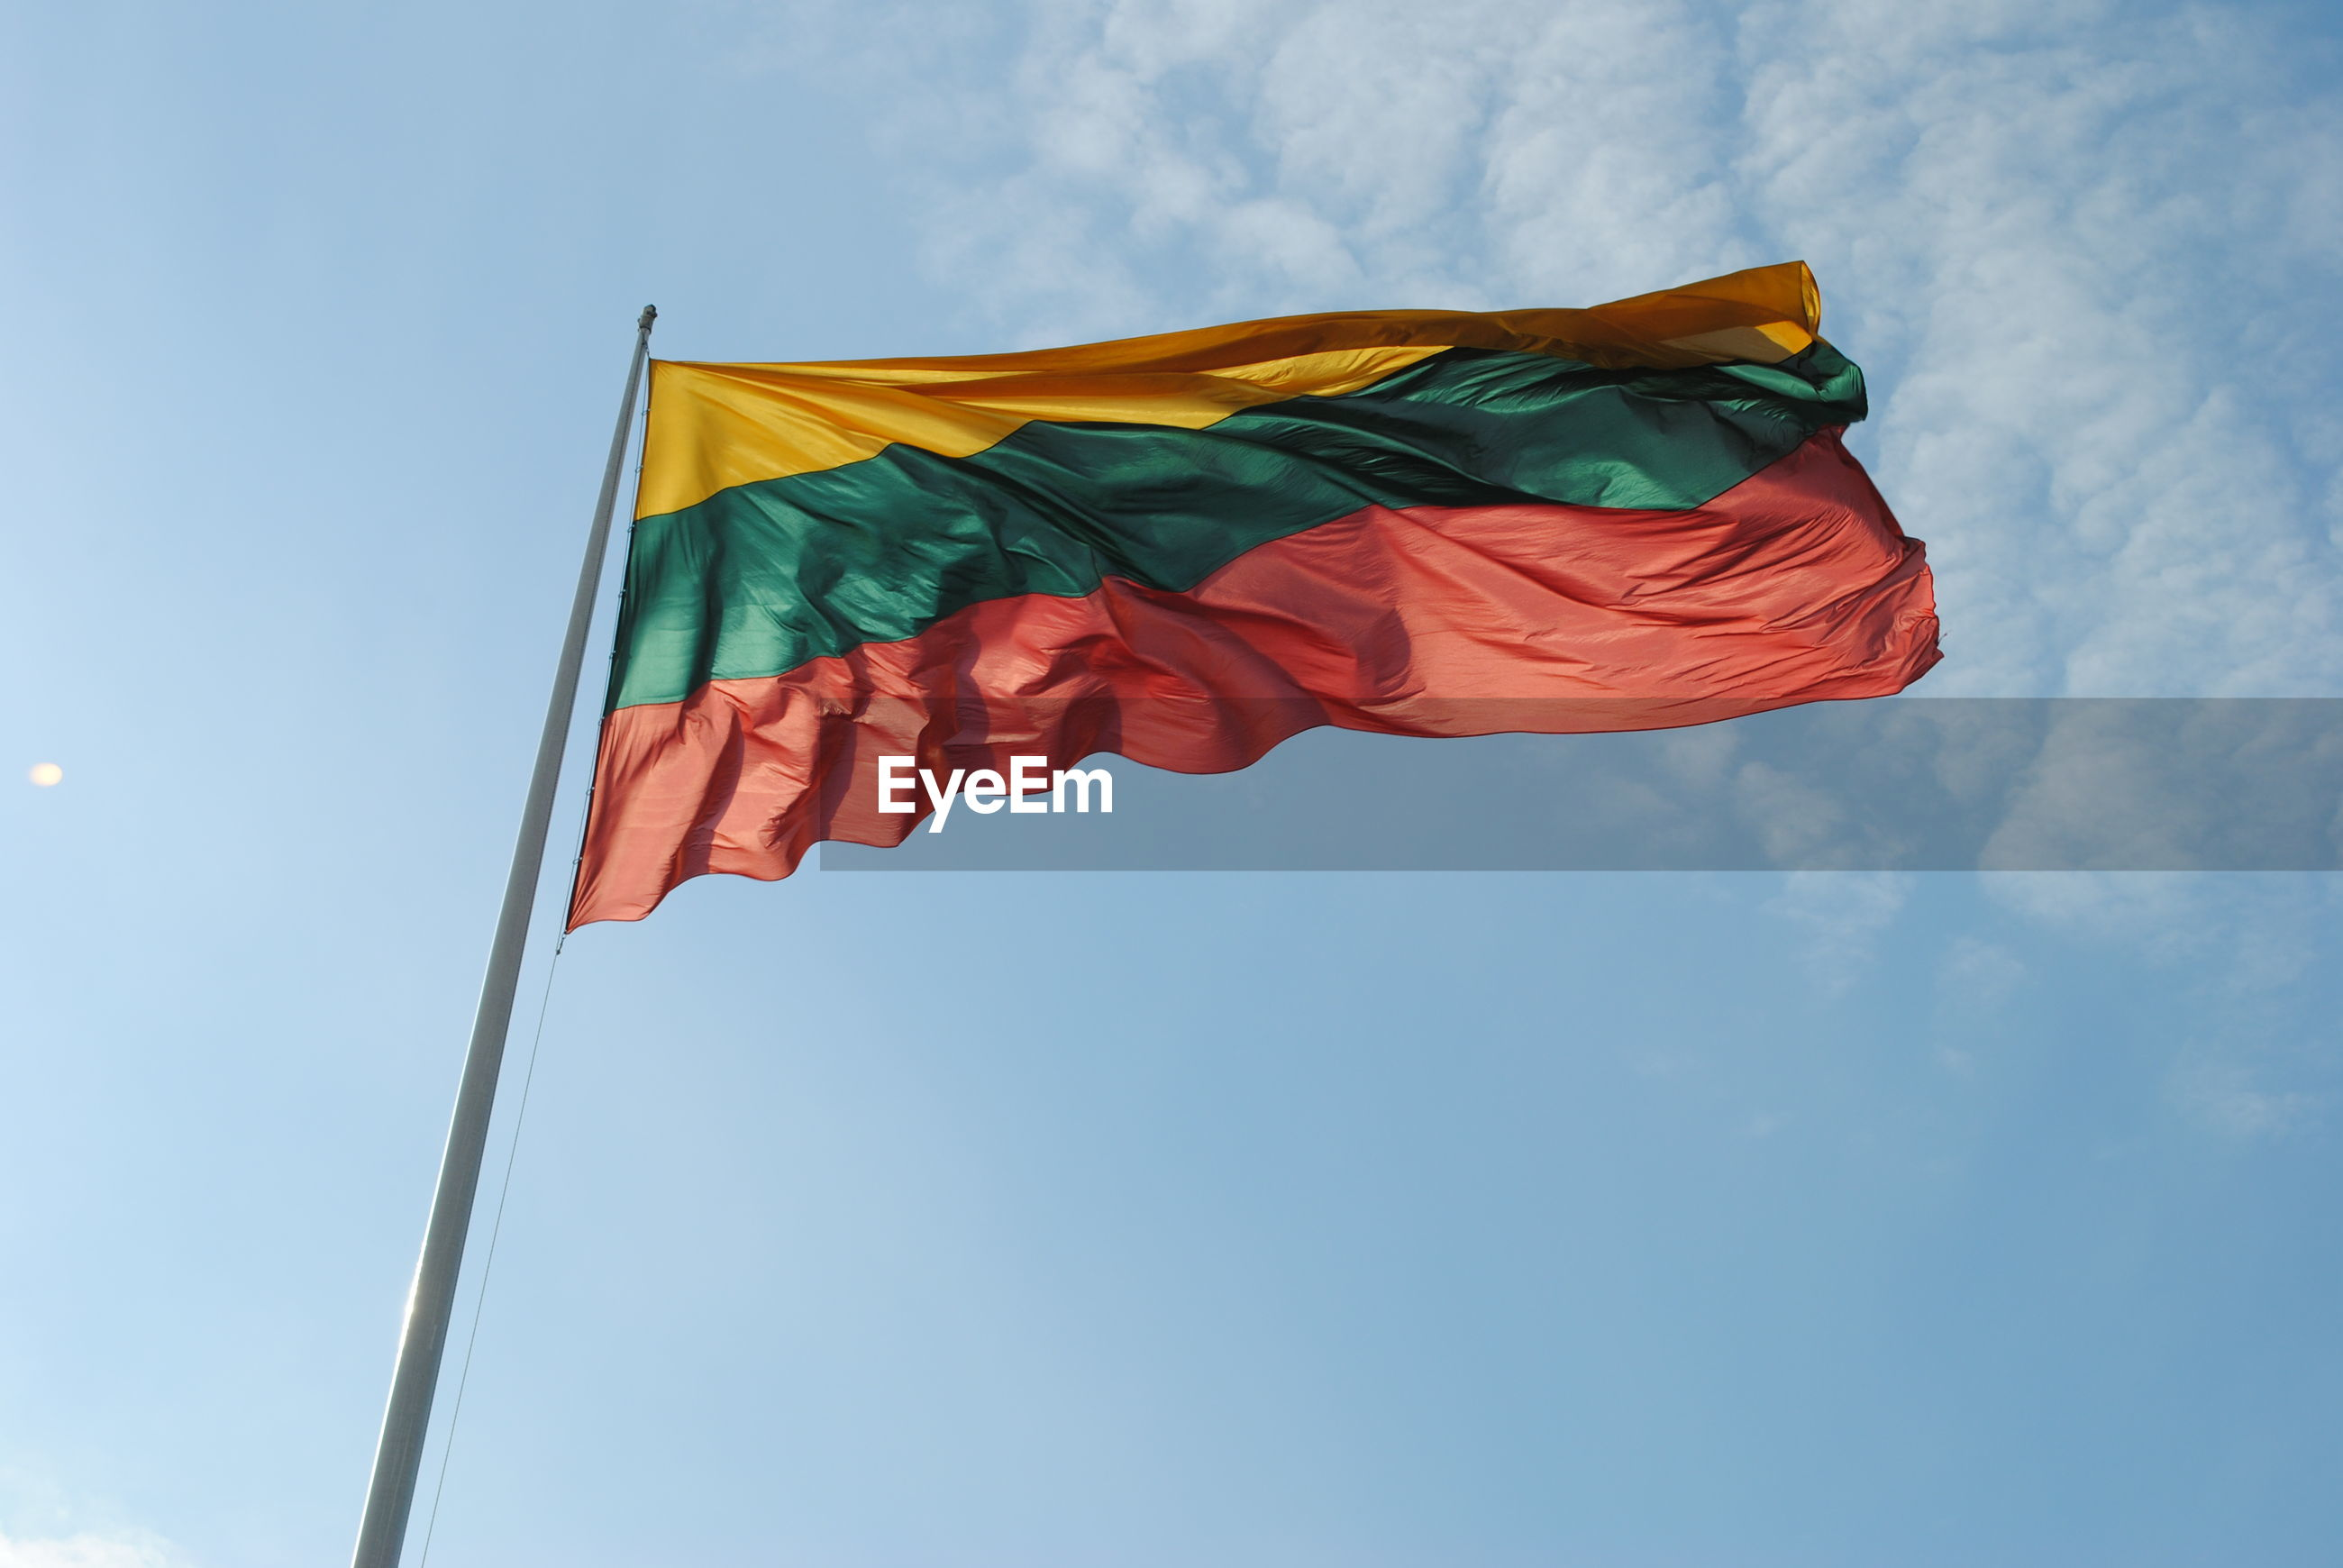 Low angle view of lithuanian flag waving against sky